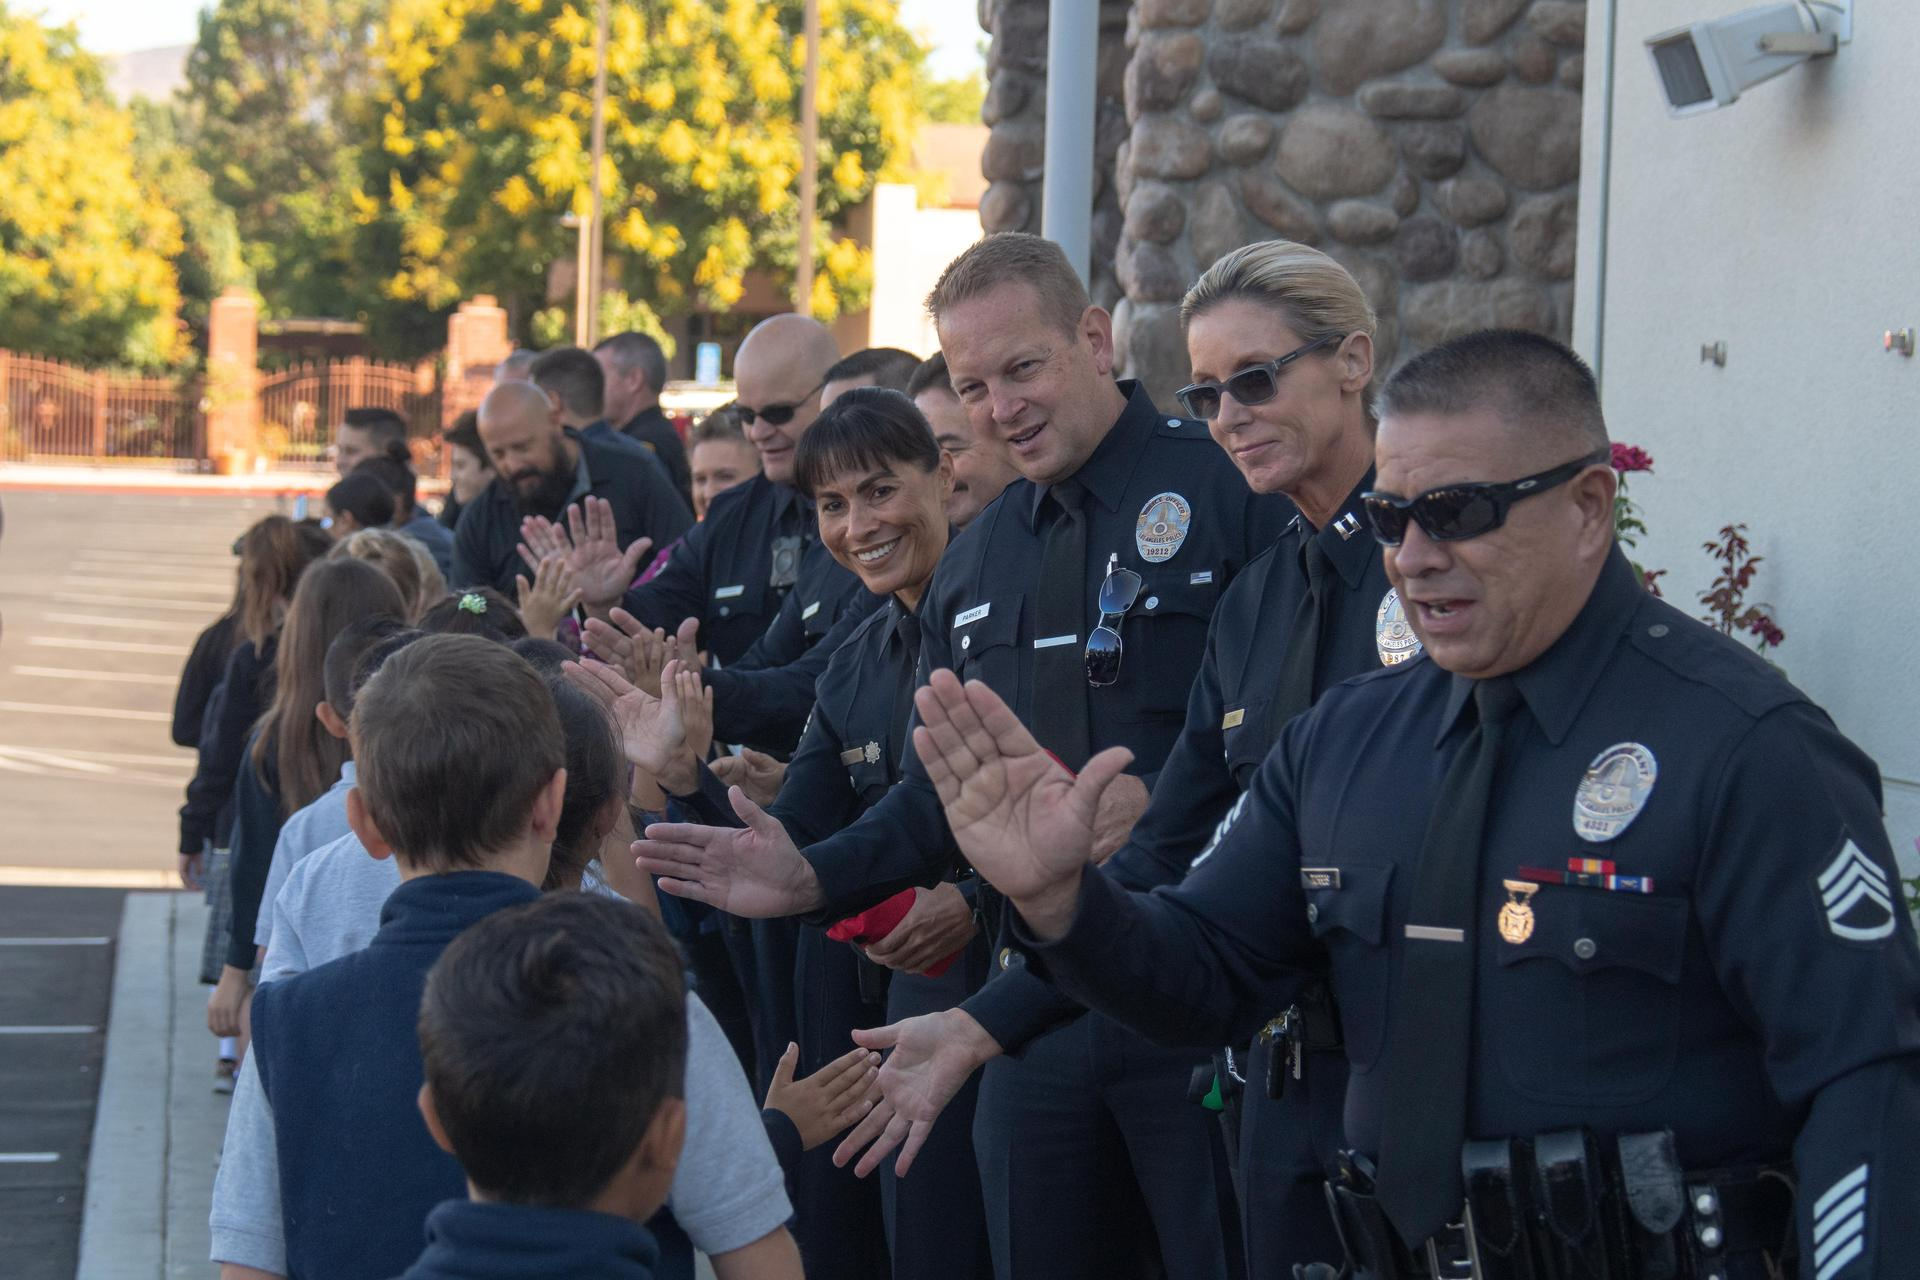 Students thanking 1st responders